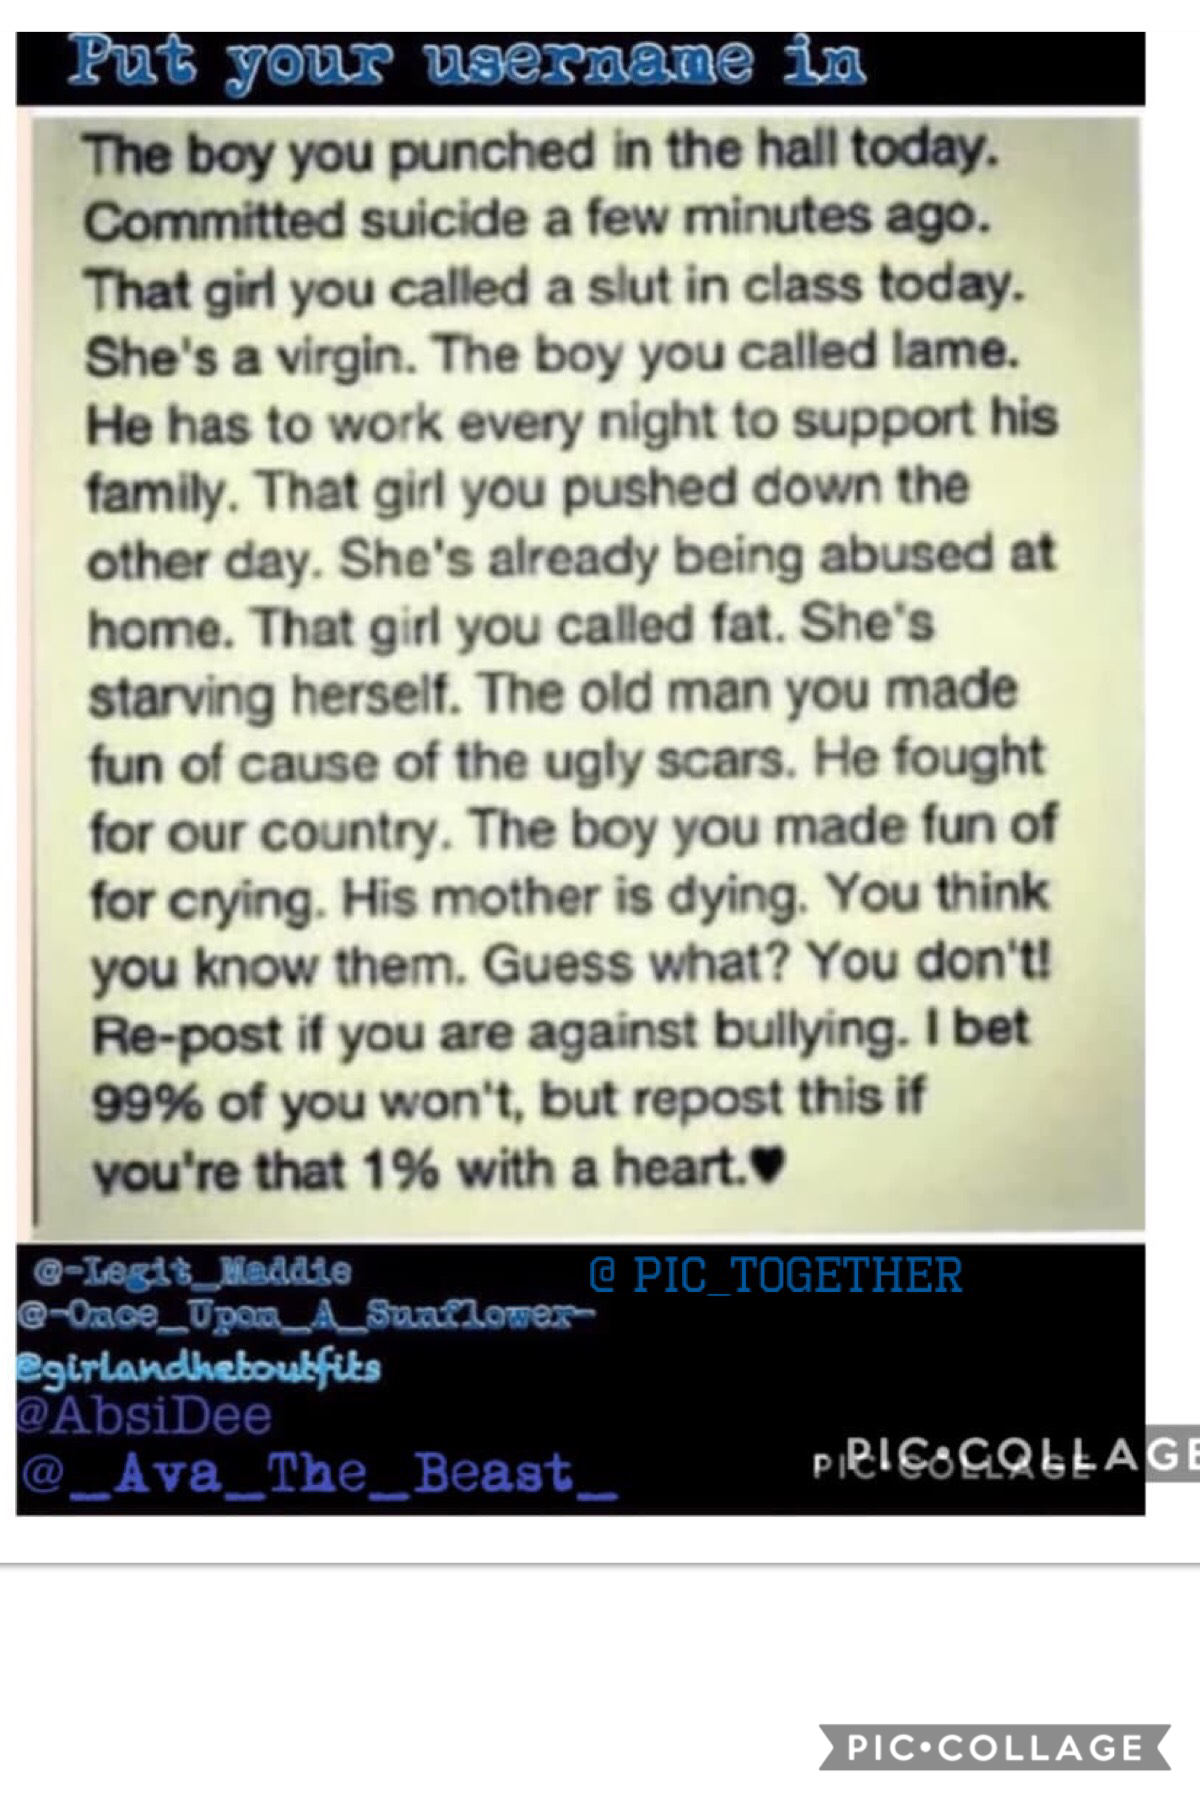 Stop bulling be the nice person. Repost. God bless.